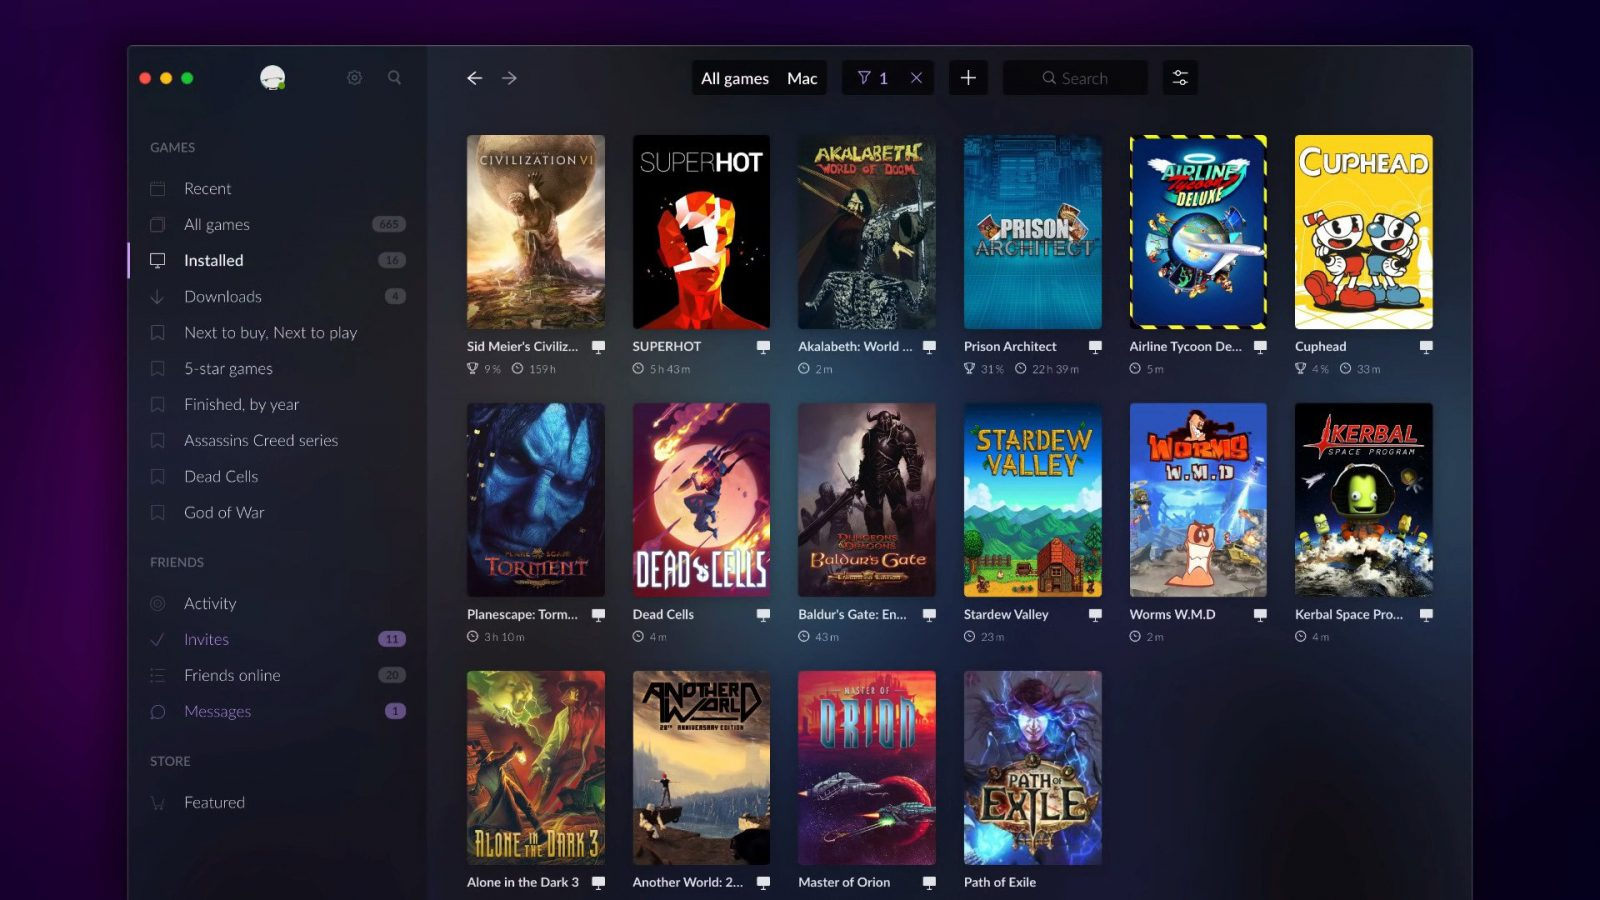 GOG Galaxy 2.0 Details Four New Features and Crazy Levels of Customization